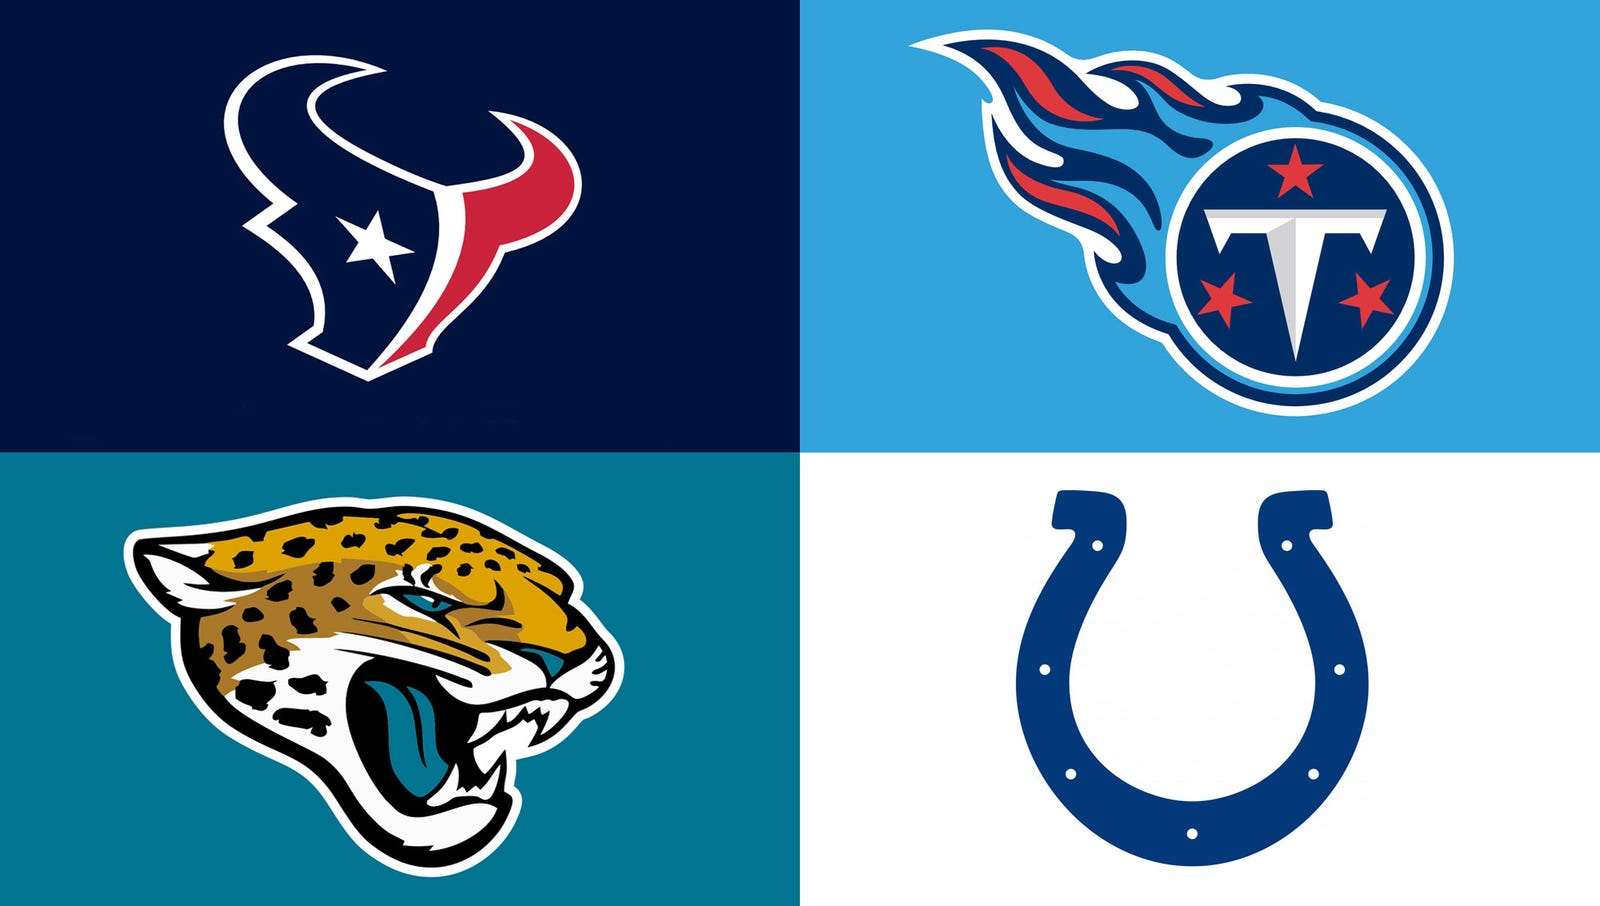 With the 2014 NFL season kicking off this week, Onion Sports has in-depth analysis on each team in the AFC South.